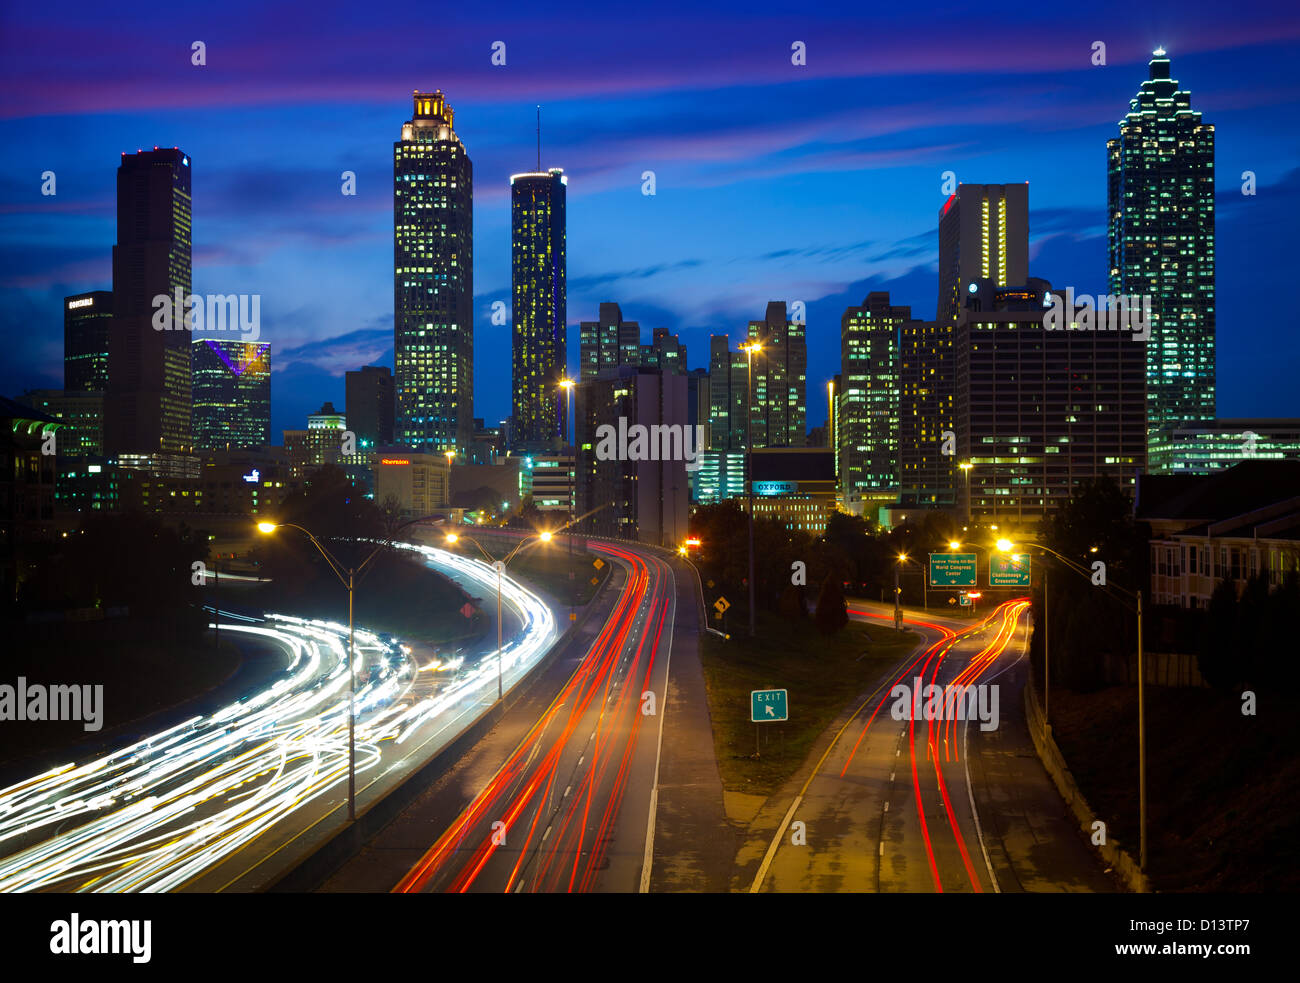 Atlanta downtown by night - Stock Image